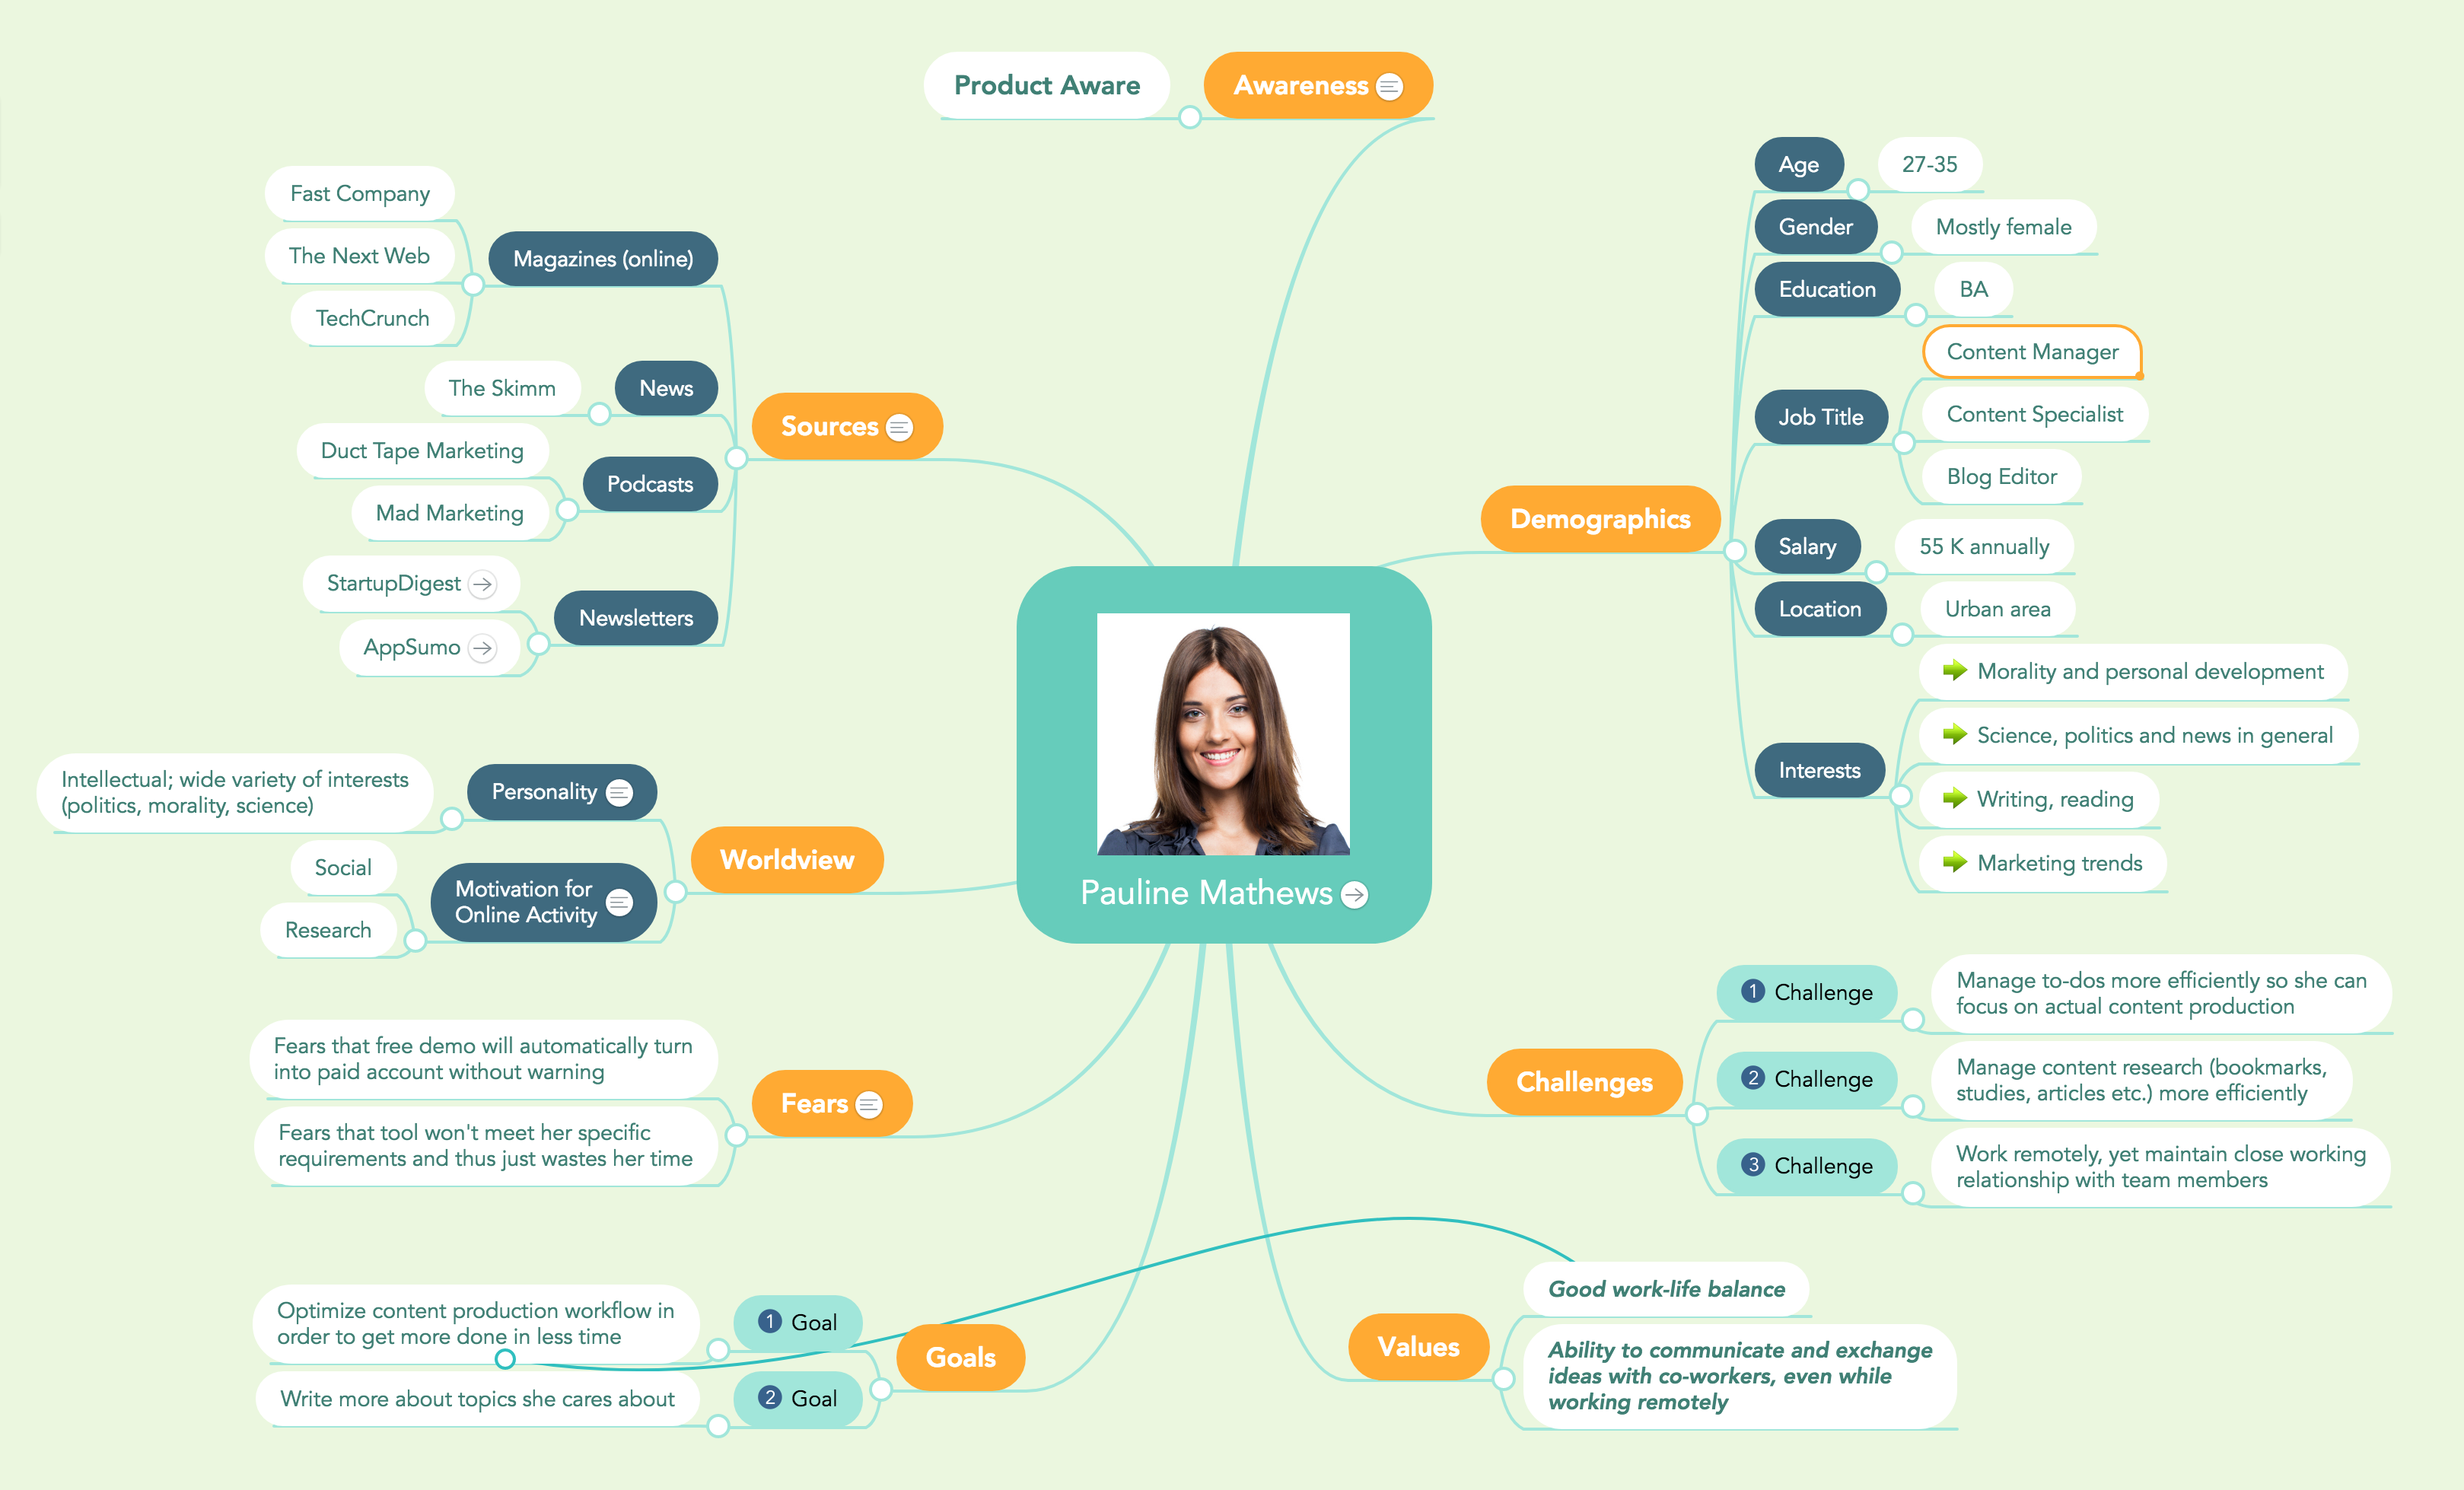 Marketing Persona Mind Map